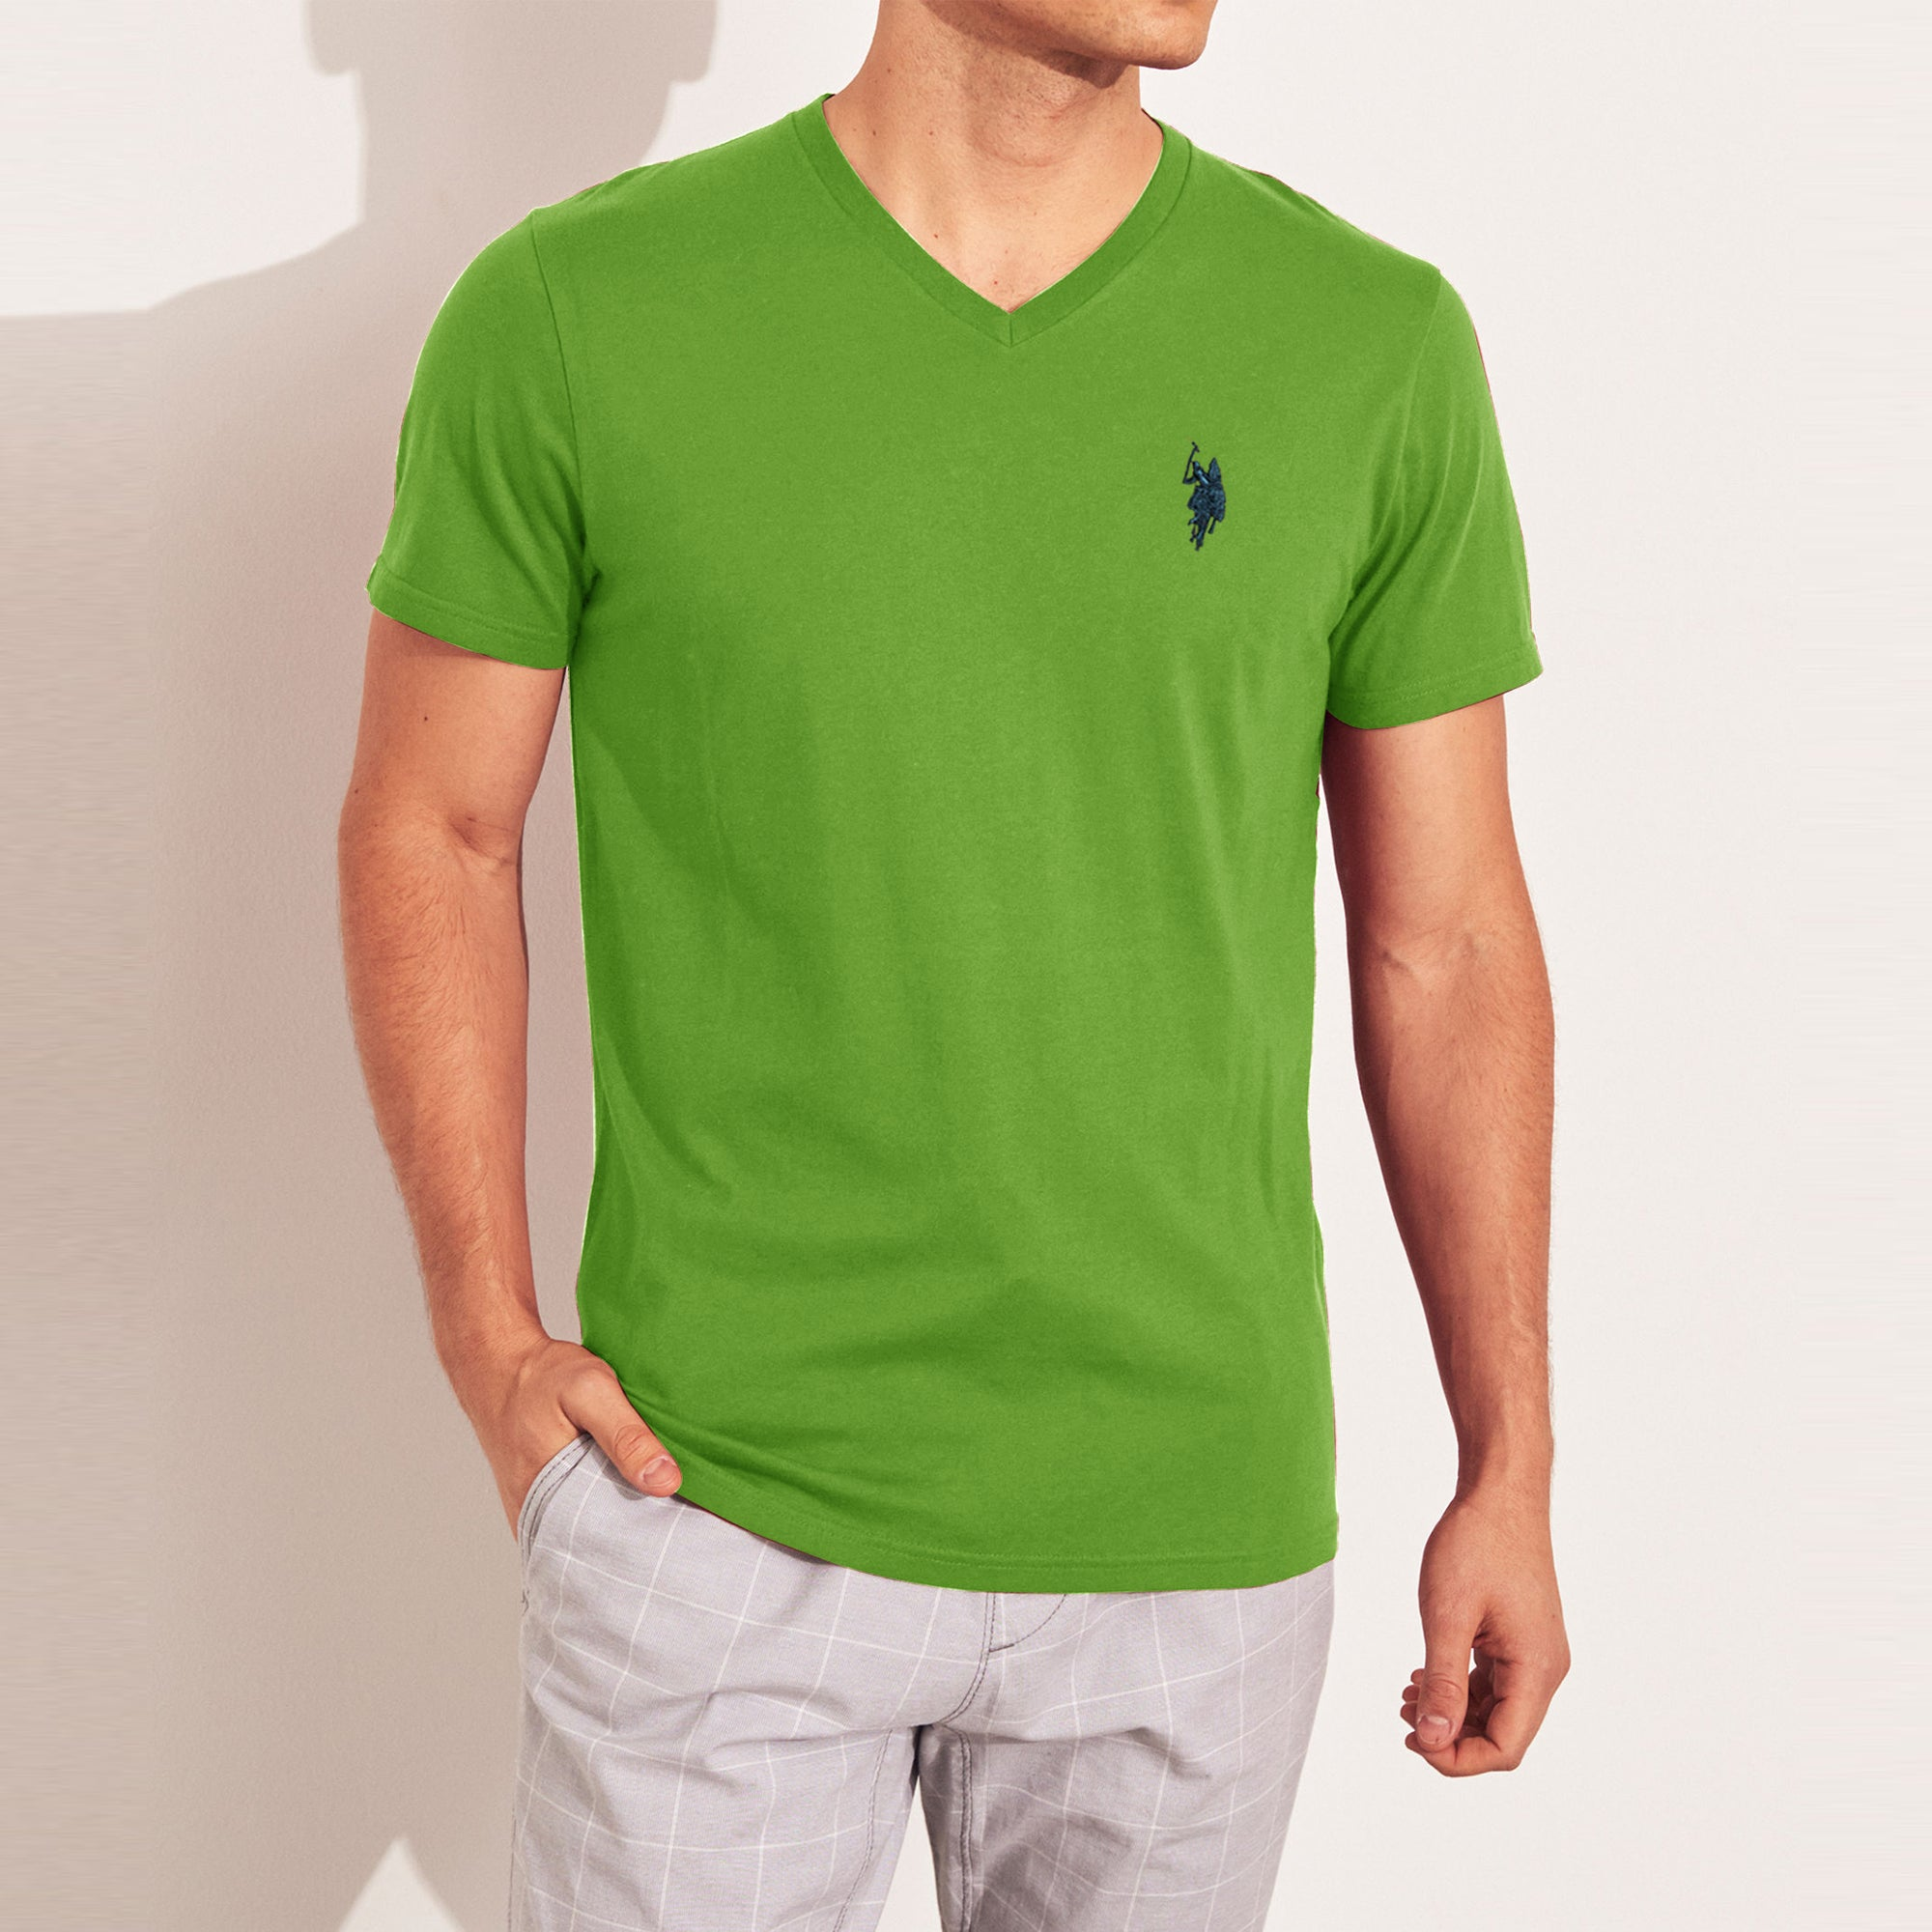 U.S POLO Single Jersey V Neck Tee Shirt For Men-SP603